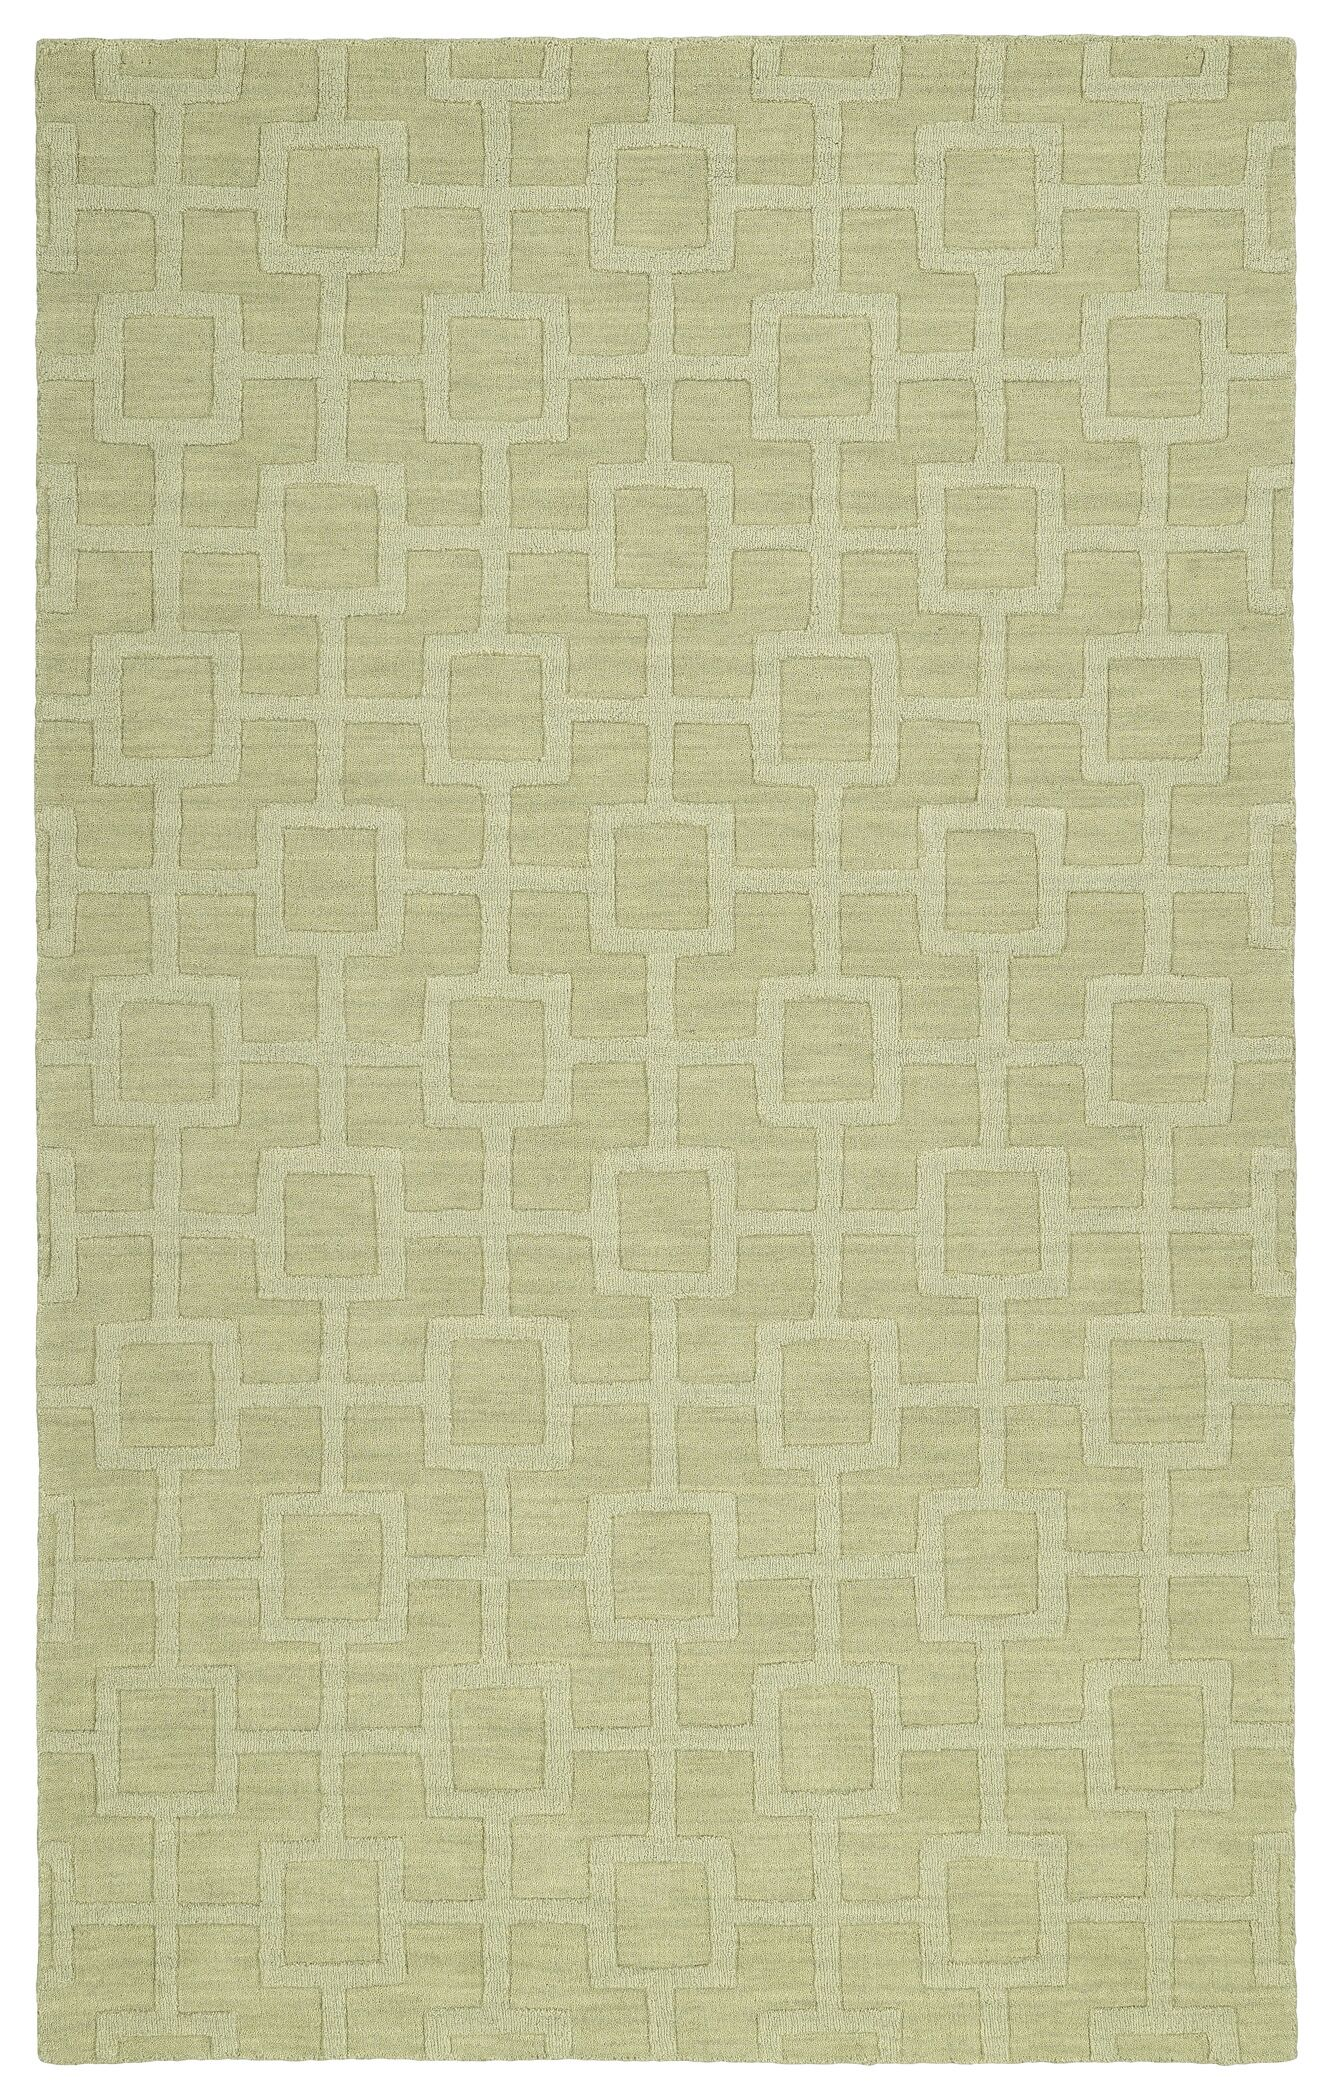 Dobson Handmade Celery Area Rug Rug Size: Rectangle 8' x 11'